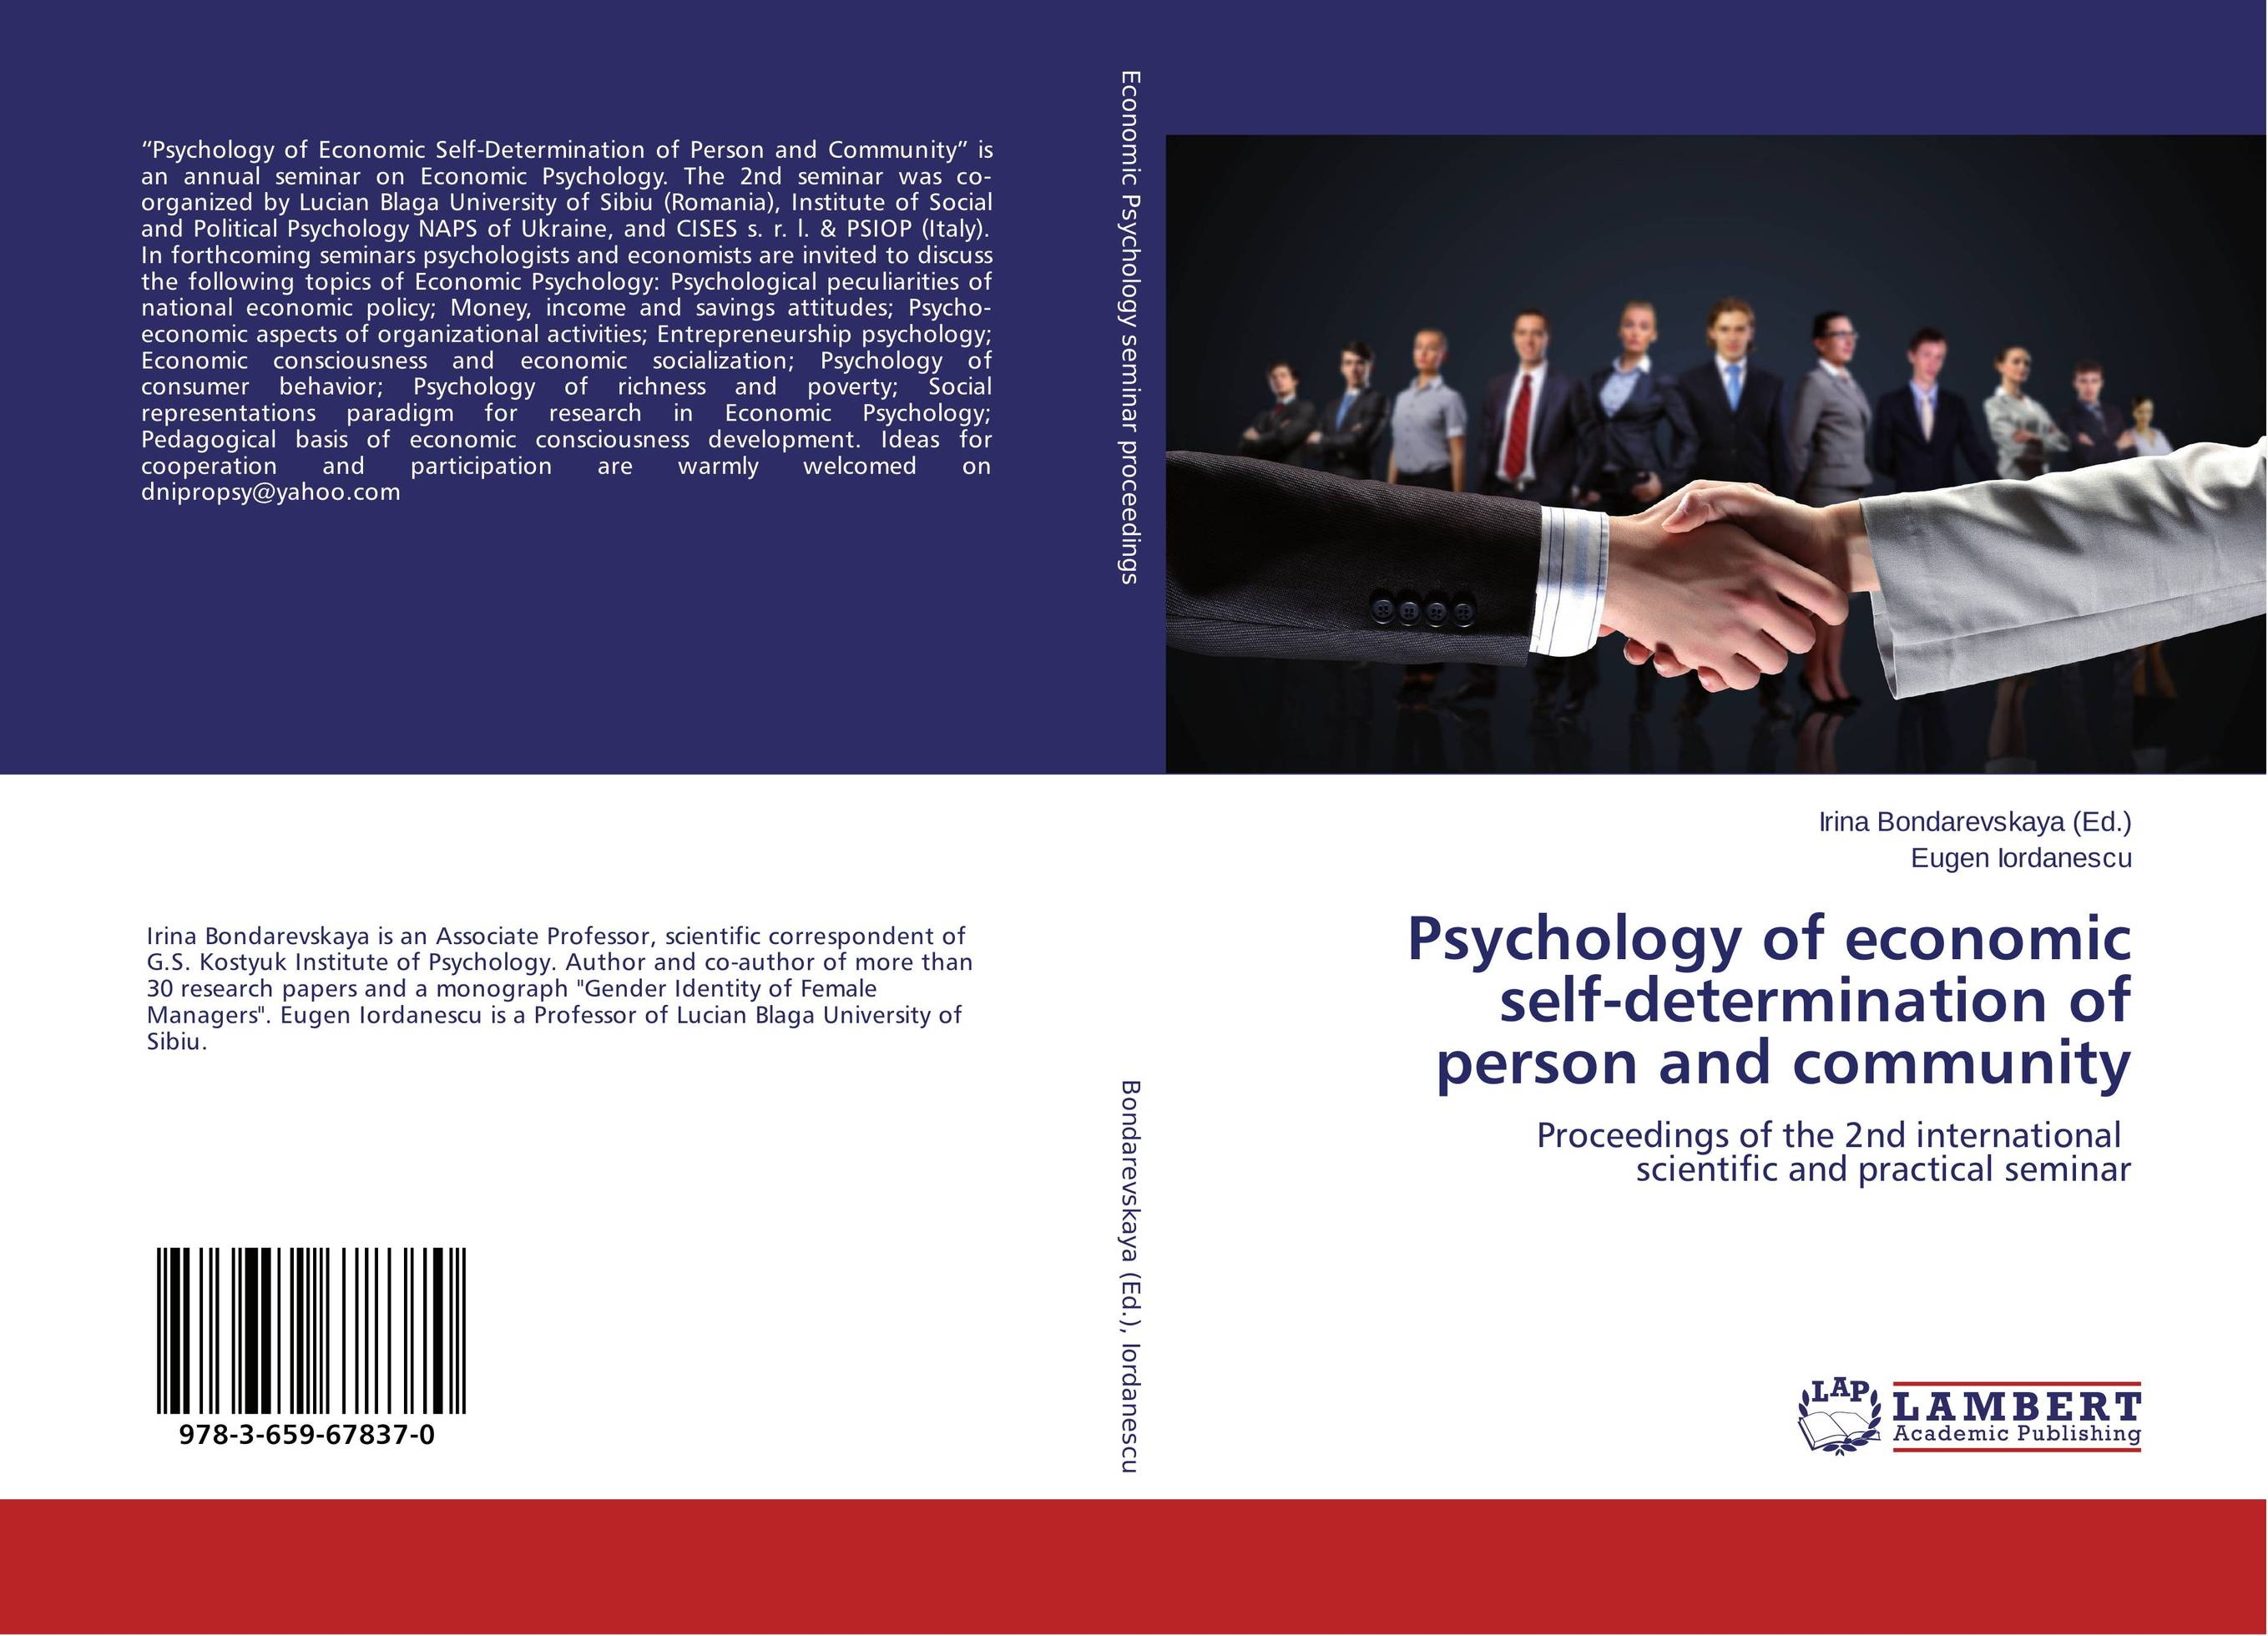 Psychology of economic self-determination of person and community economic methodology